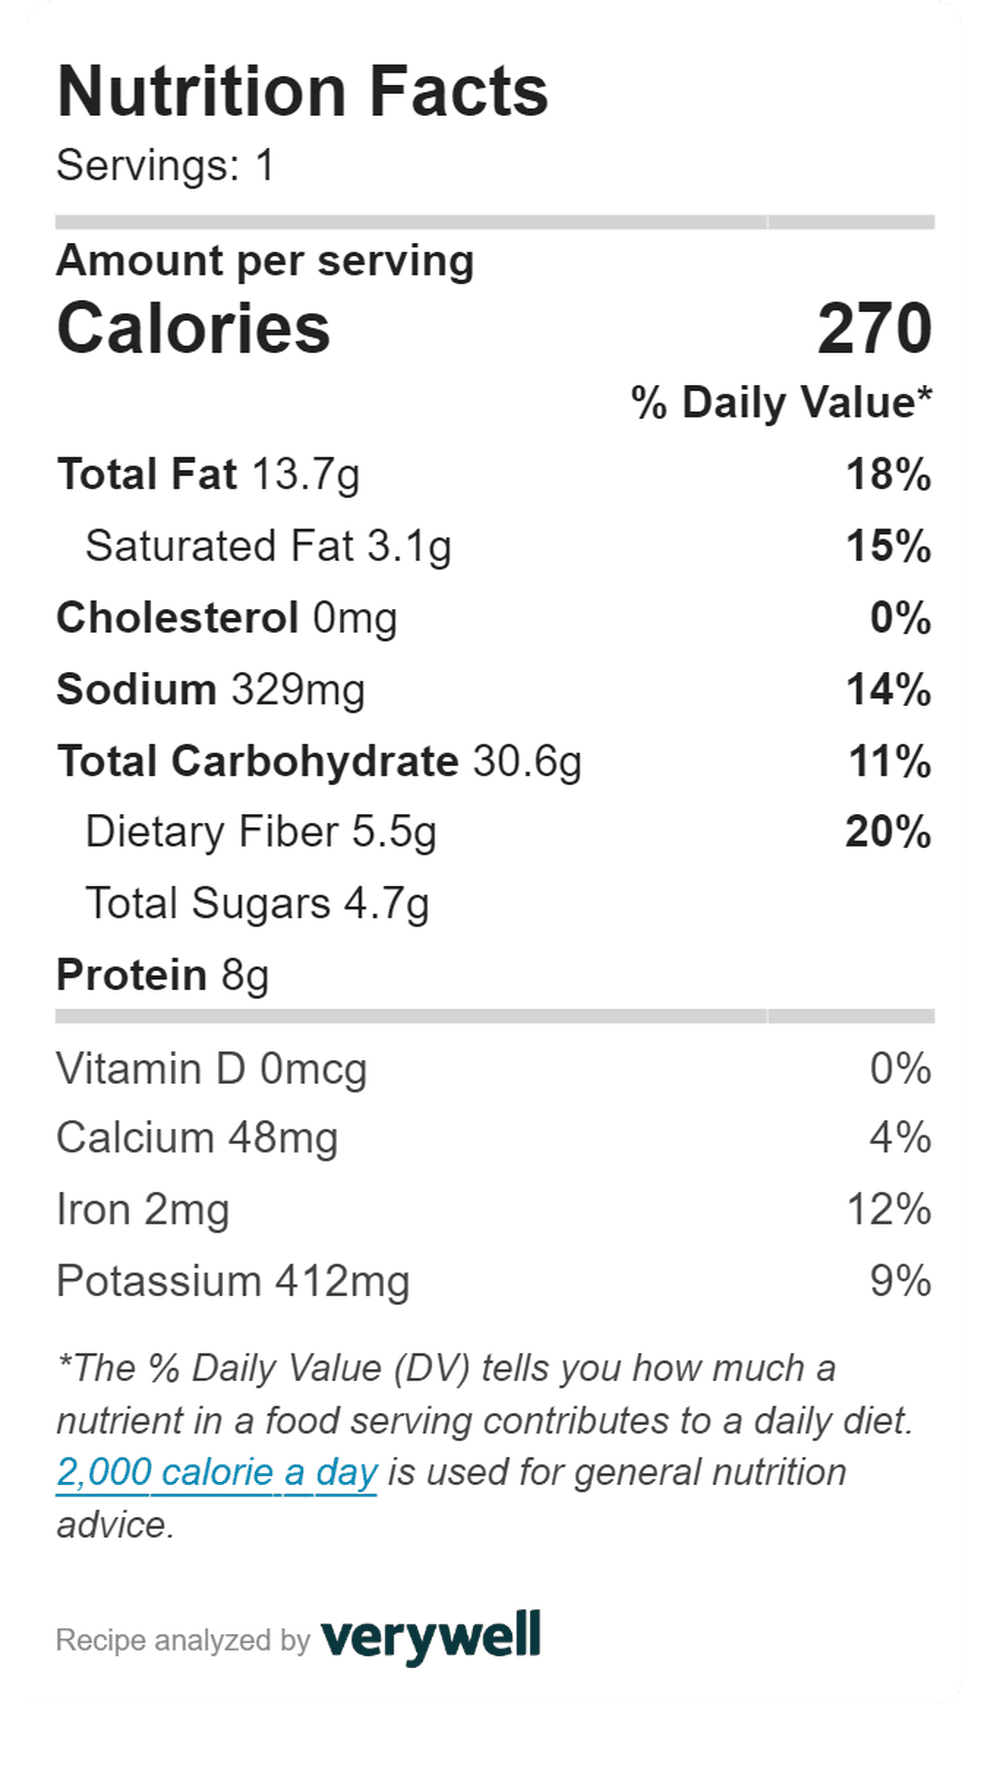 nutrition in Carrot and Spinach Crunch Lunch Wrap - 270 calories and 3.1g fat.